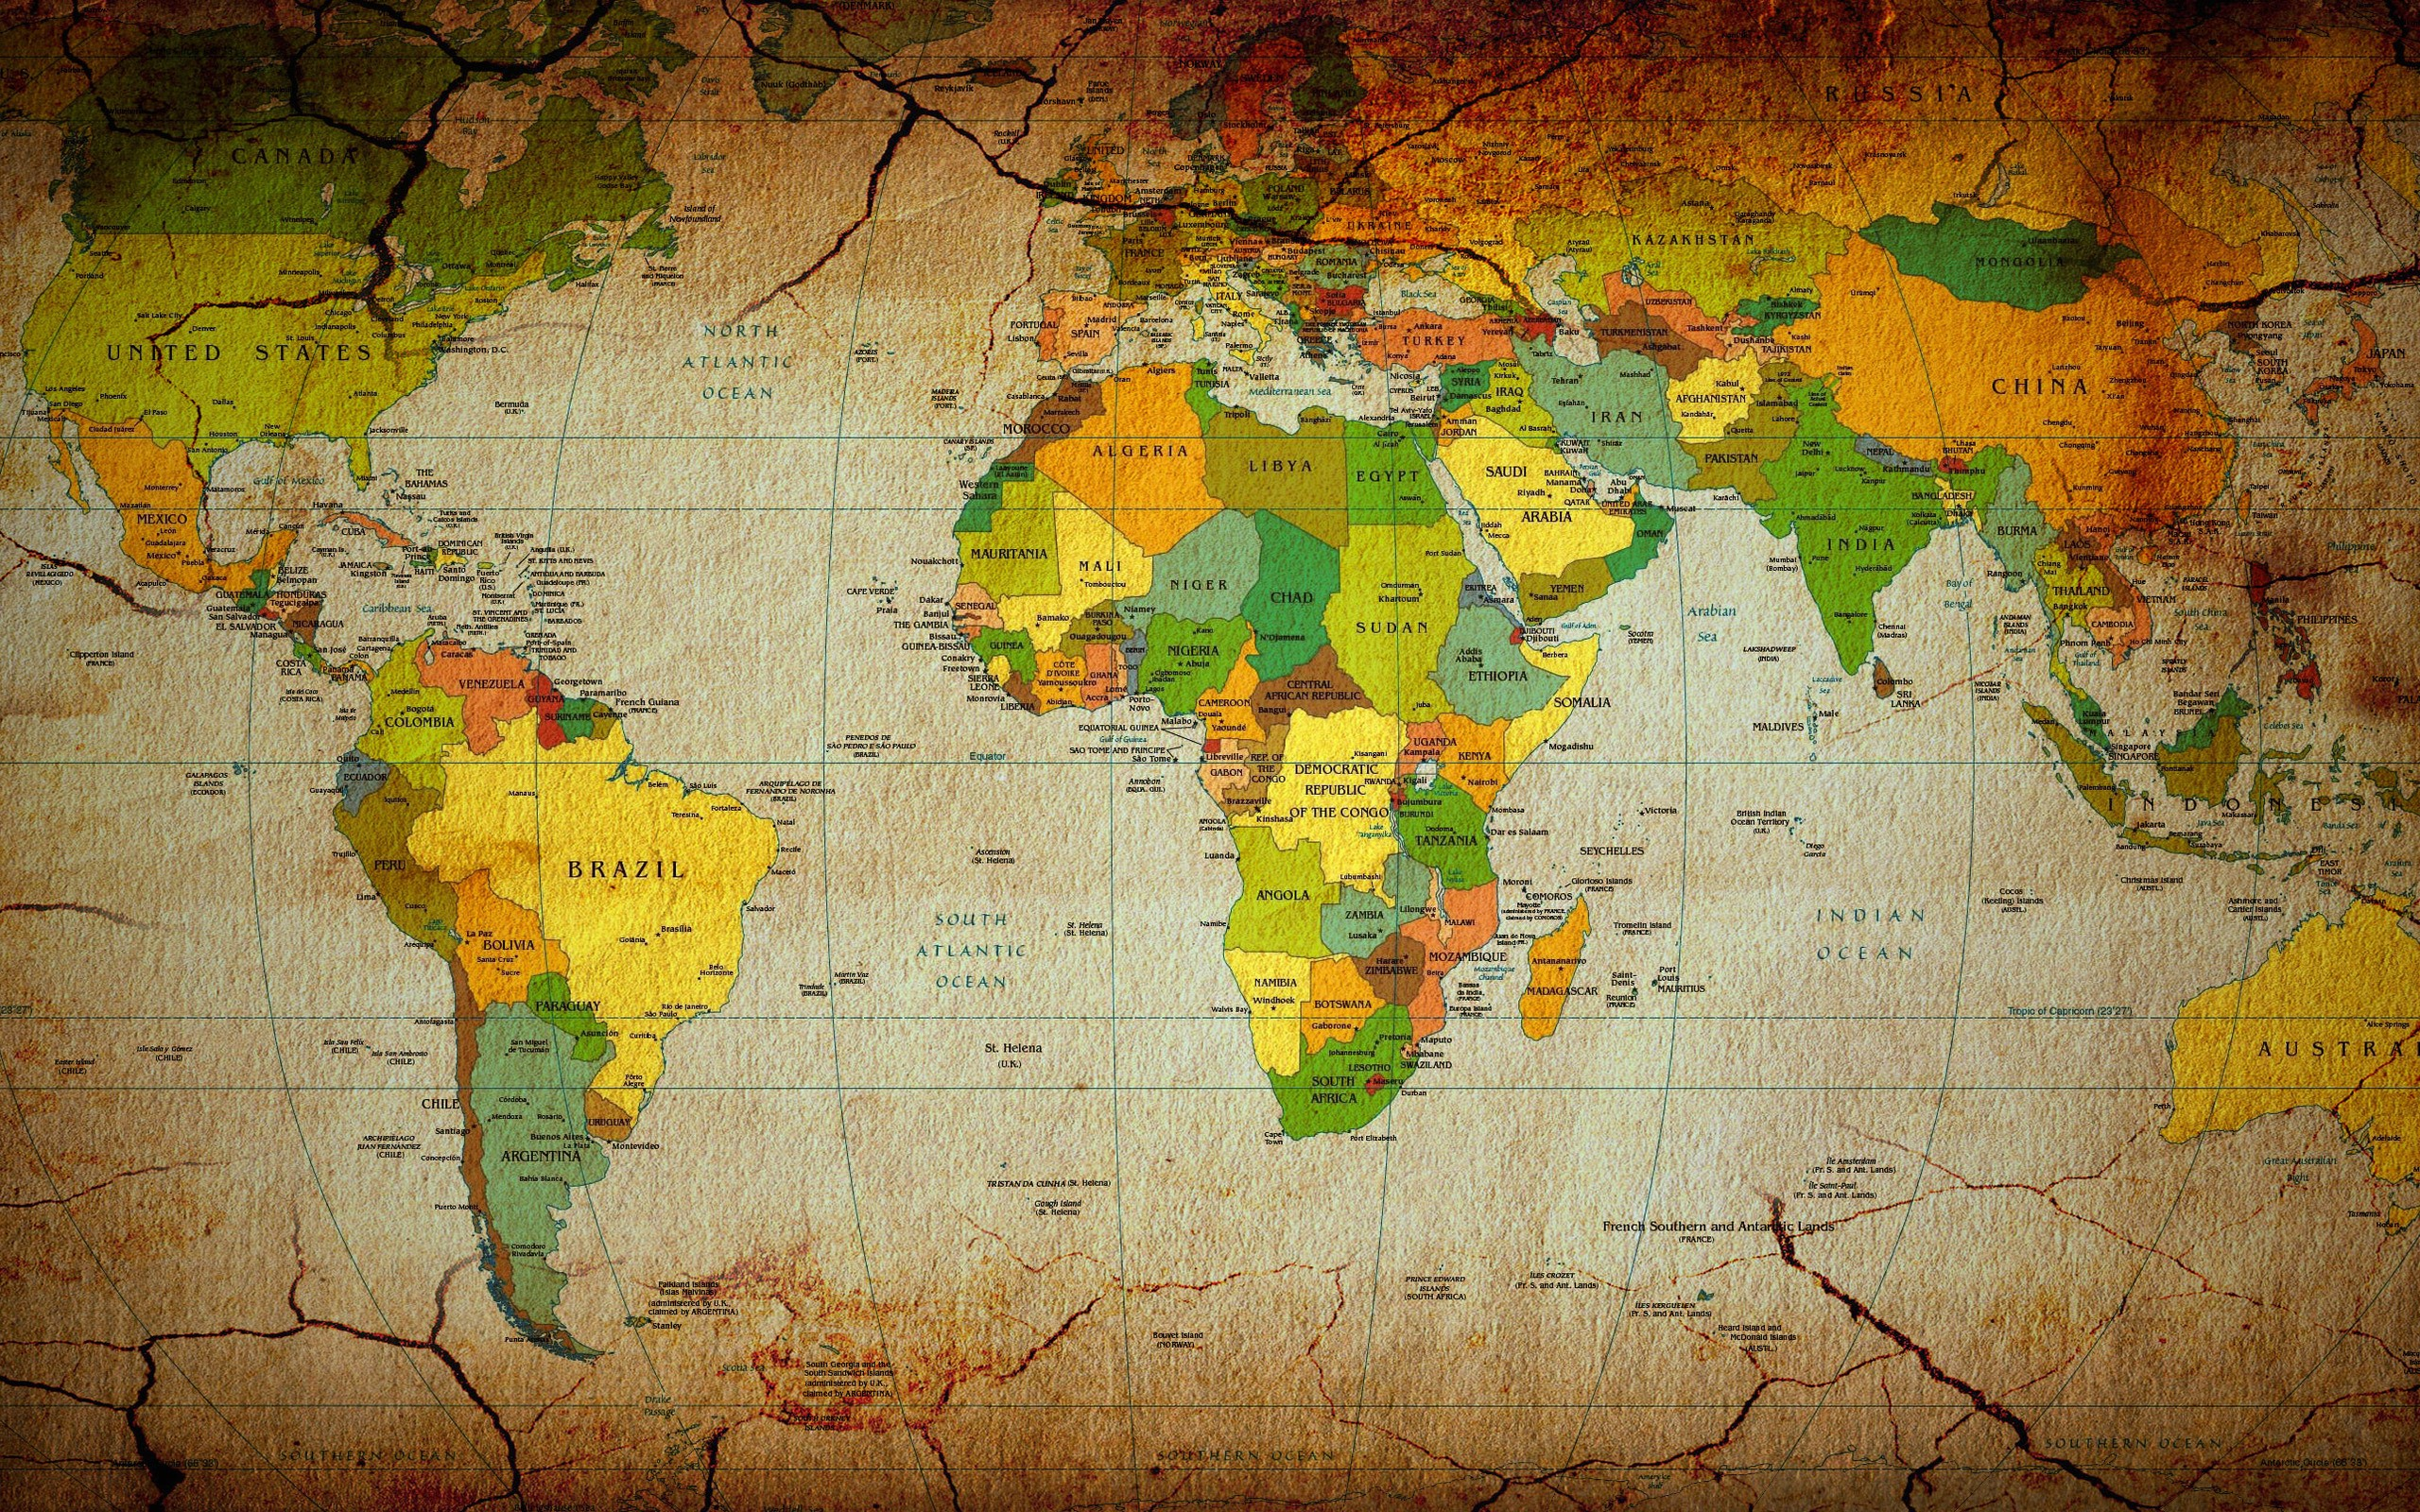 151 world map hd wallpapers background images wallpaper abyss 151 world map hd wallpapers background images wallpaper abyss page 5 gumiabroncs Images